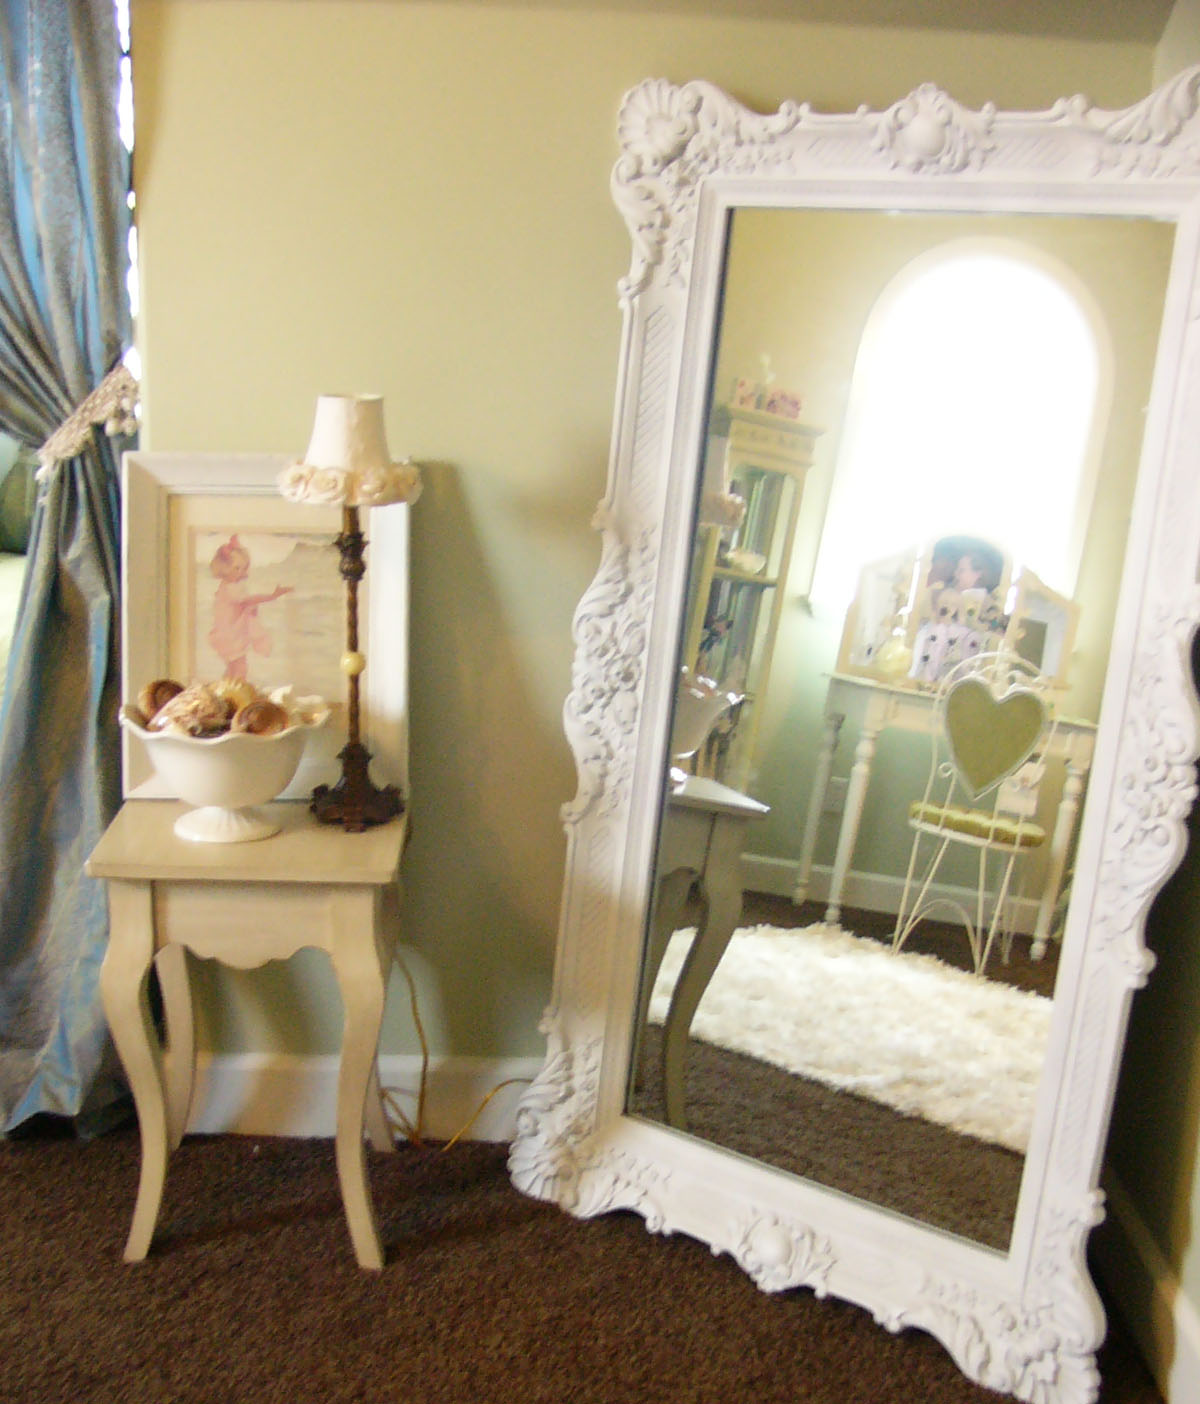 Beach gypsies mirror mirror on the wall for Large bedroom mirror